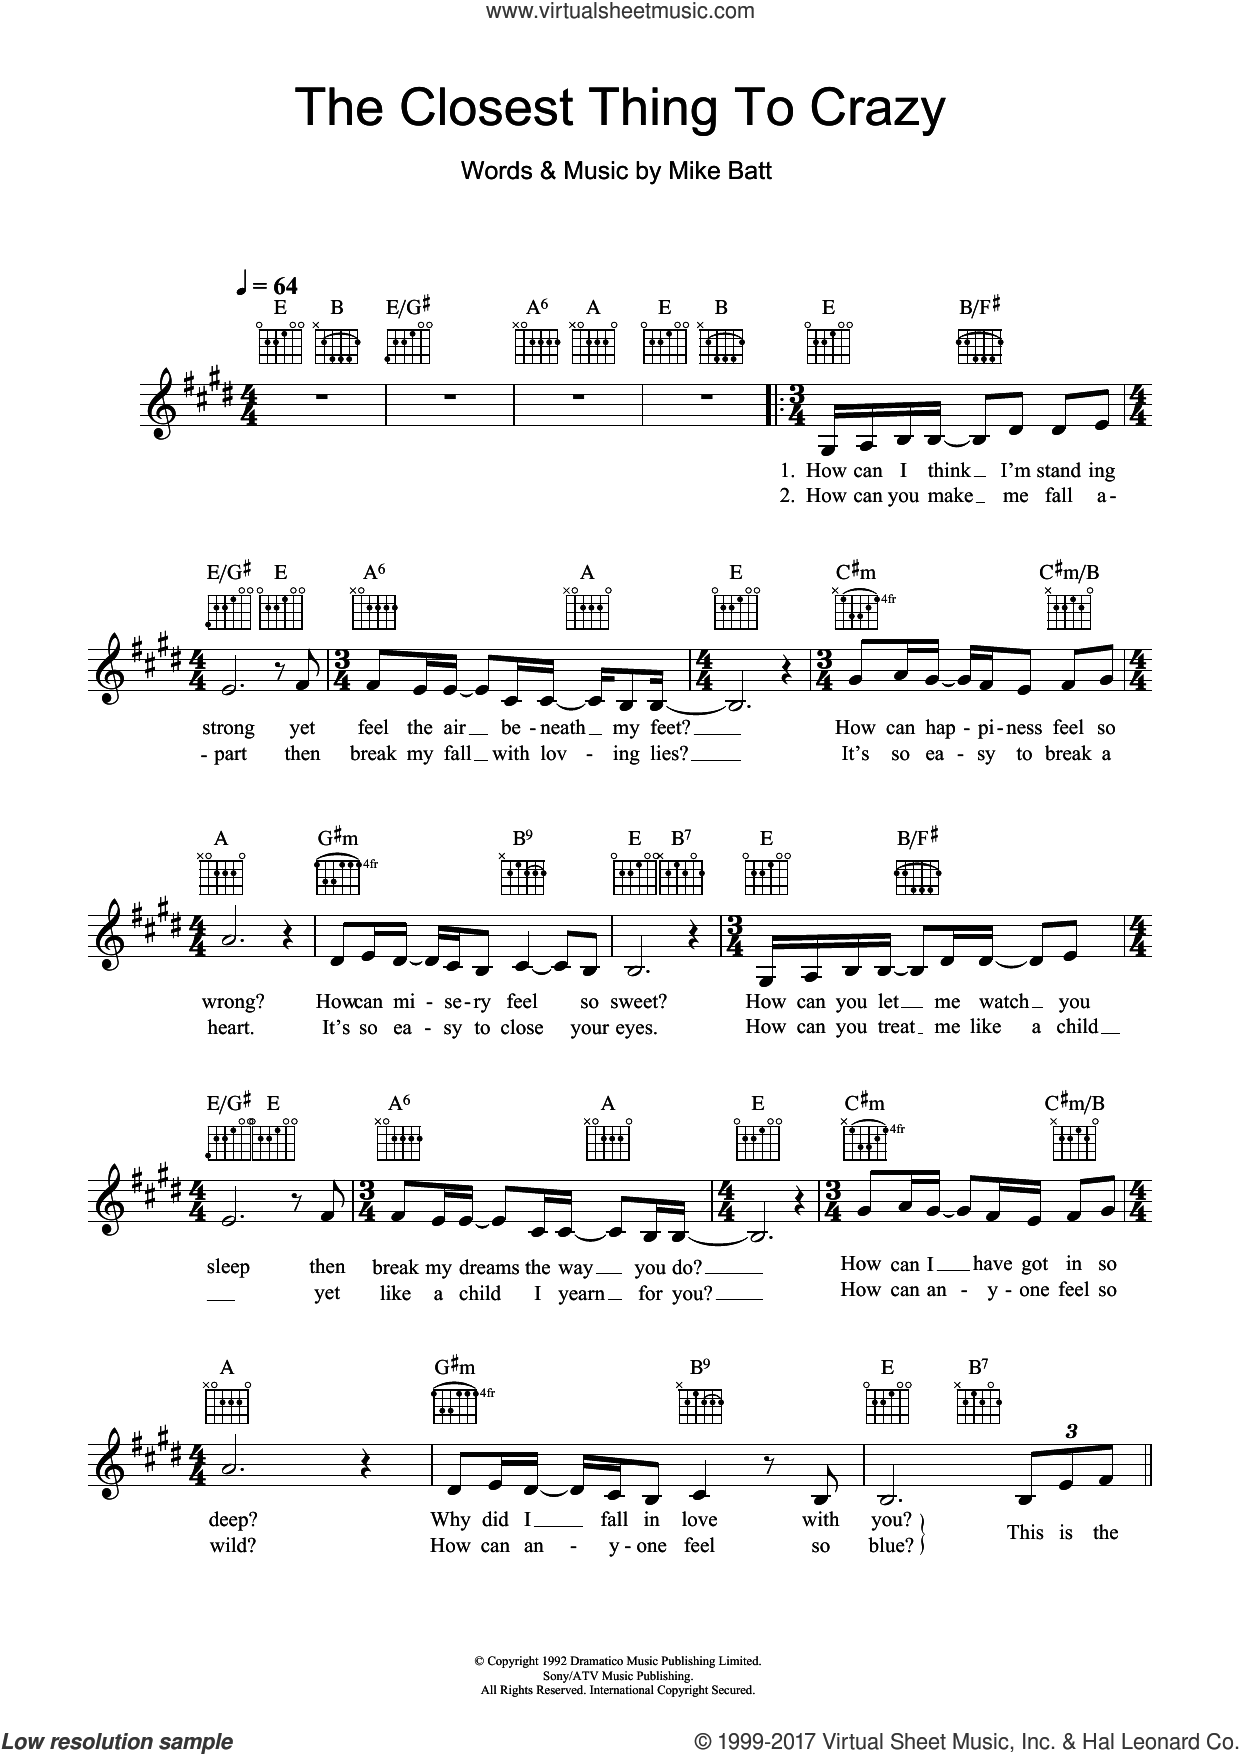 The Closest Thing To Crazy sheet music for voice and other instruments (fake book) by Katie Melua and Mike Batt, intermediate